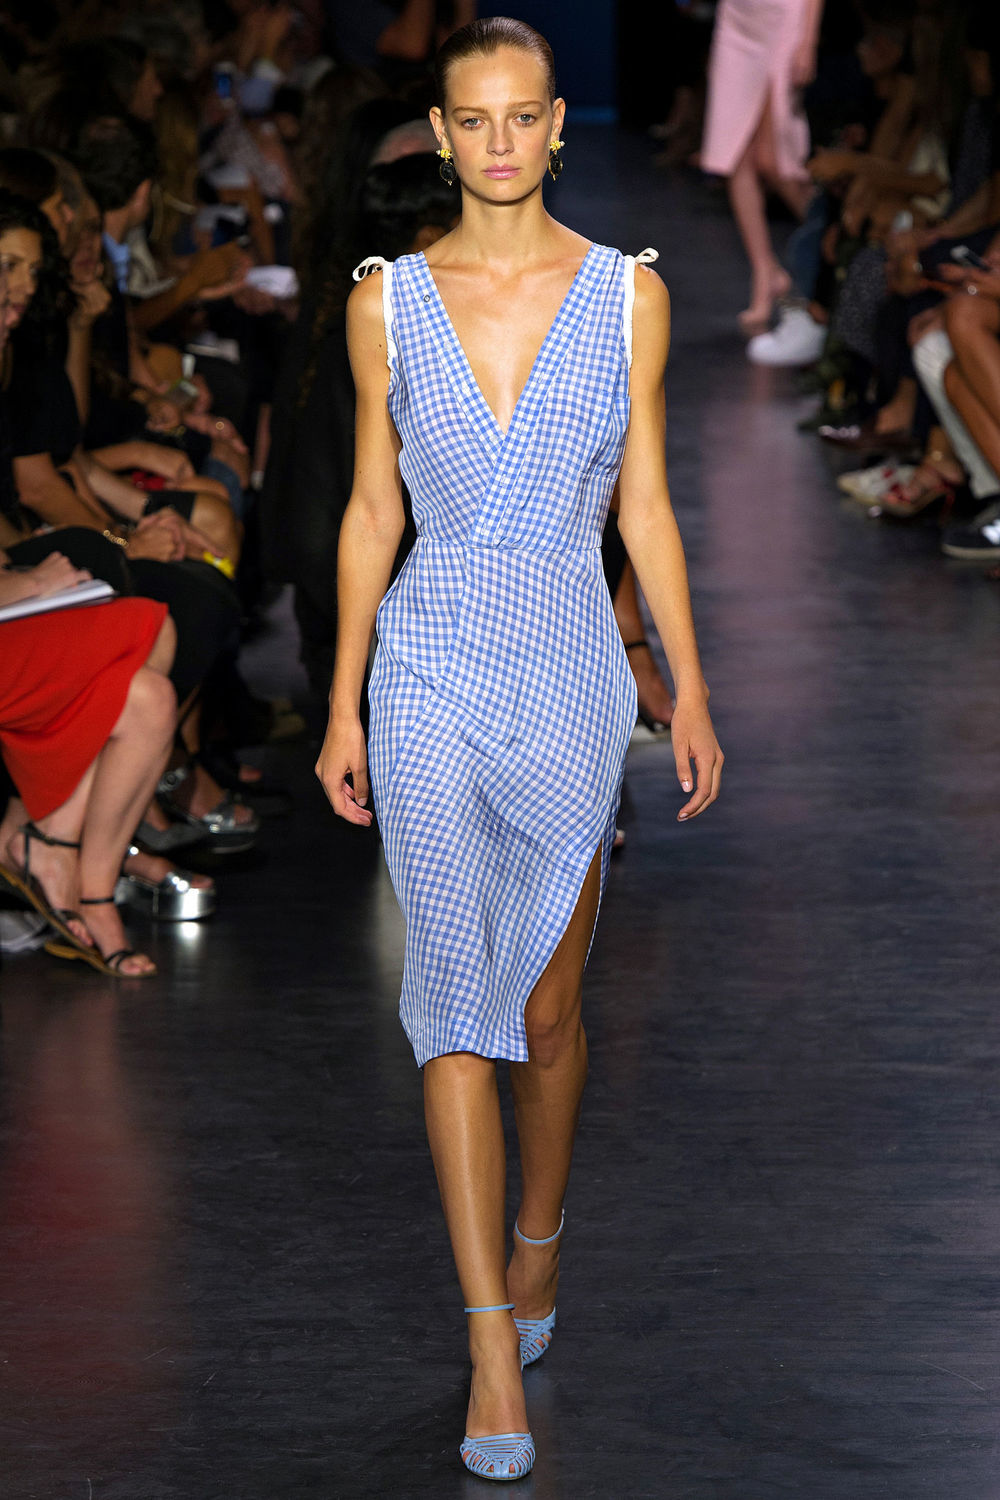 A gingham look from New York fashion label Altuzarra, via elle.co.uk